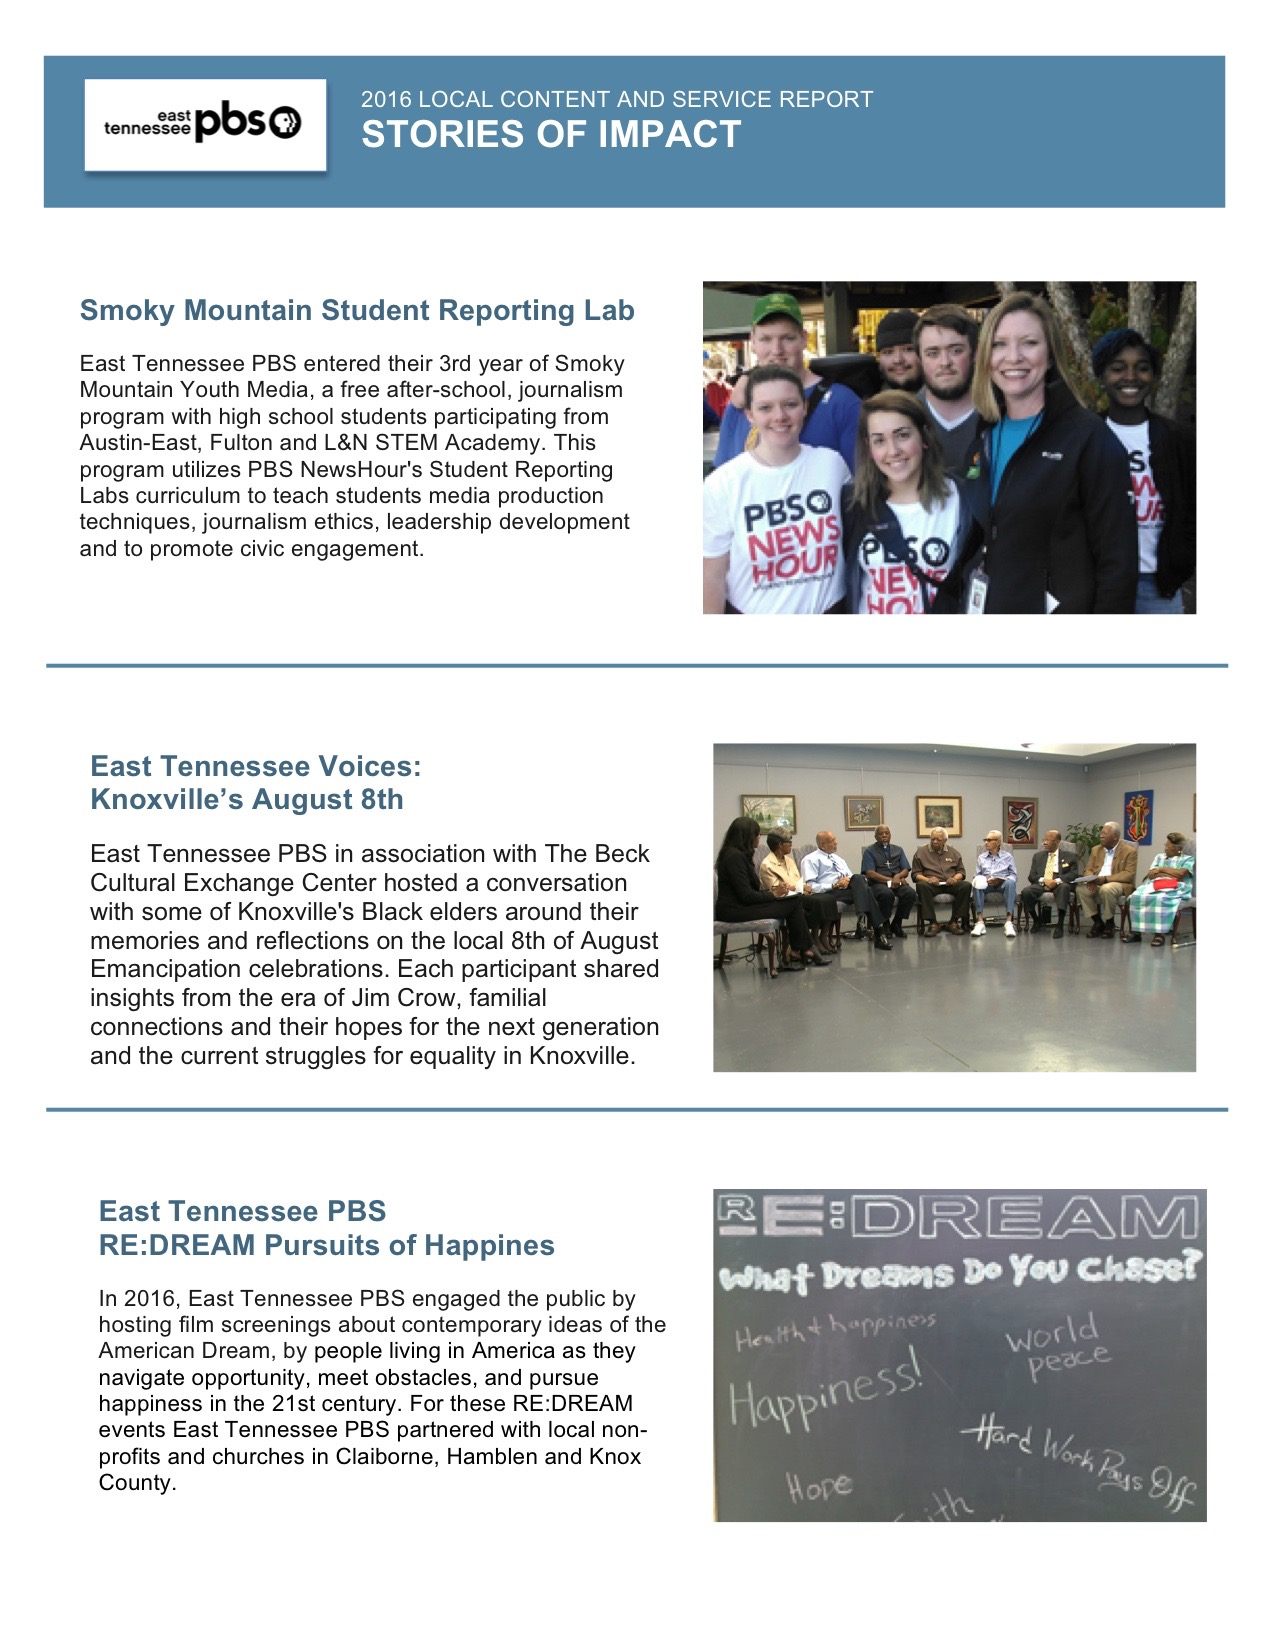 2016 Local Content and Service Report Page 3.jpg